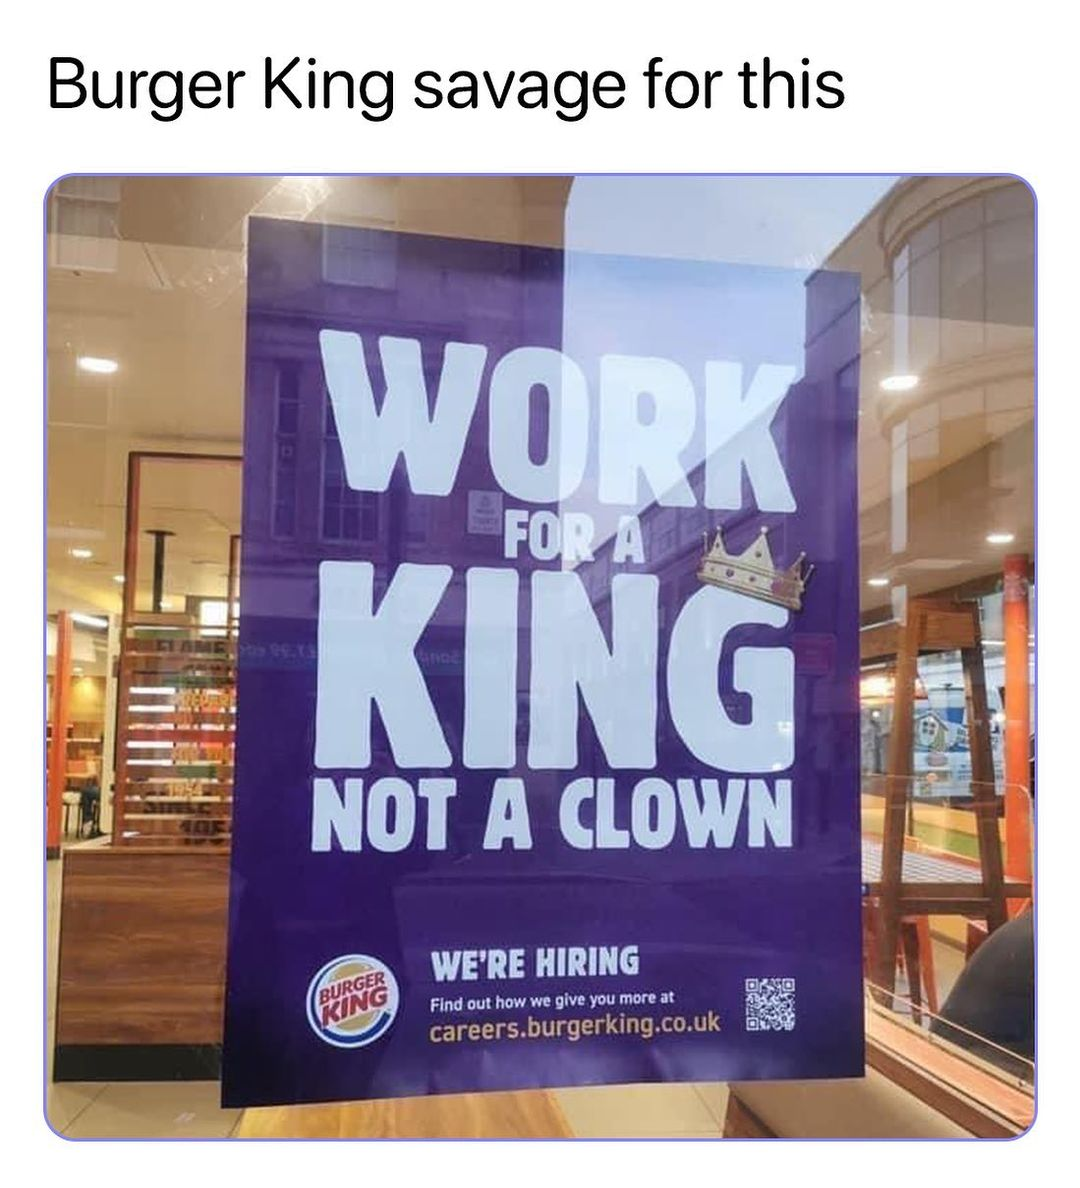 Burger King savage for this.  Work for a King not a clown. We're hiring.